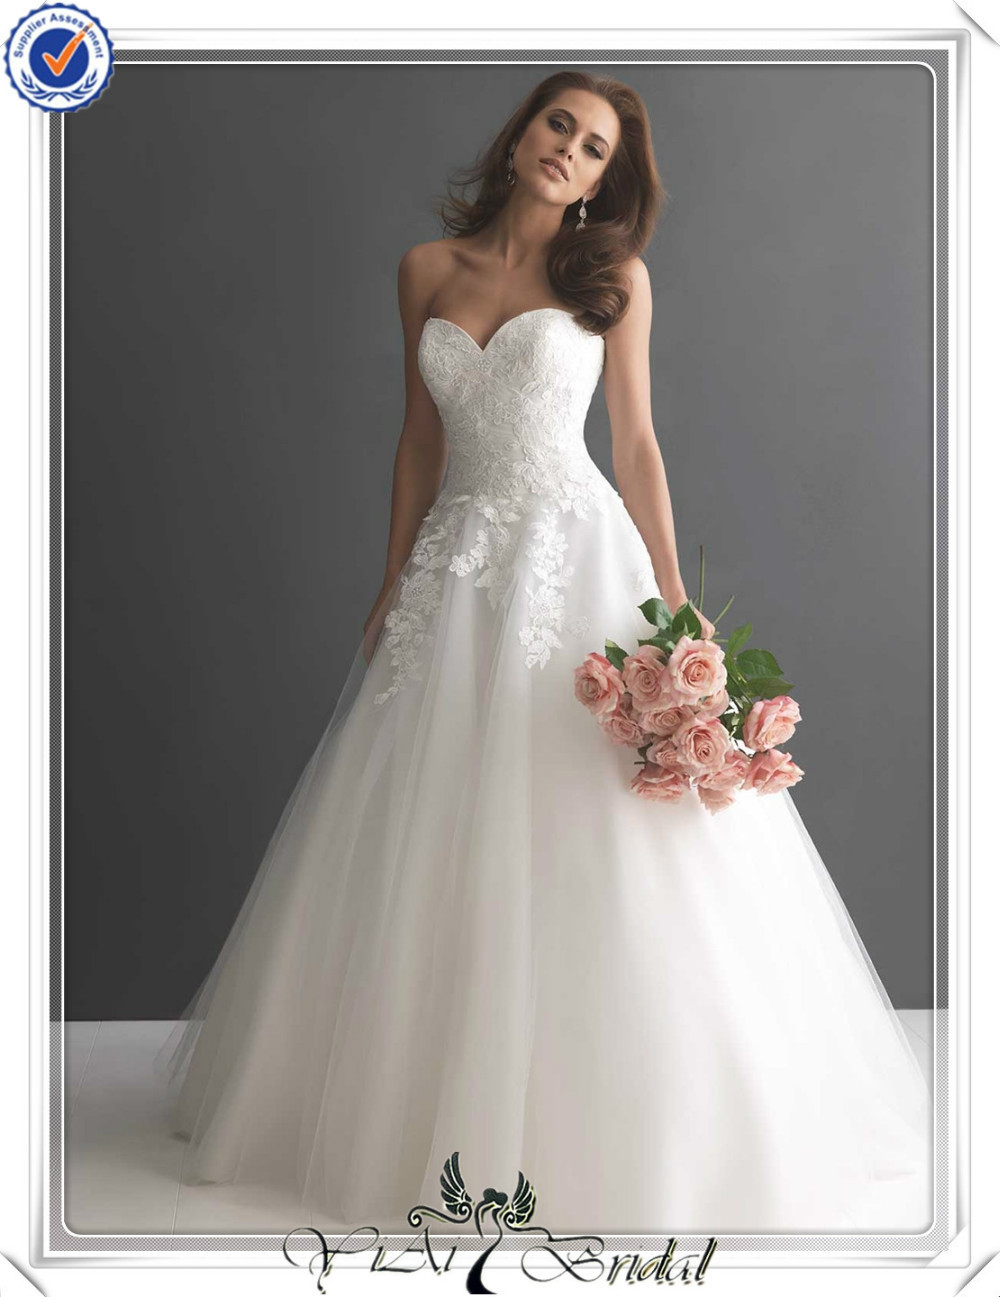 Fq0021 Sweetheart Neckline Puffy Skirt Anese Bridal Wedding Dress In Dresses From Weddings Events On Aliexpress Alibaba Group